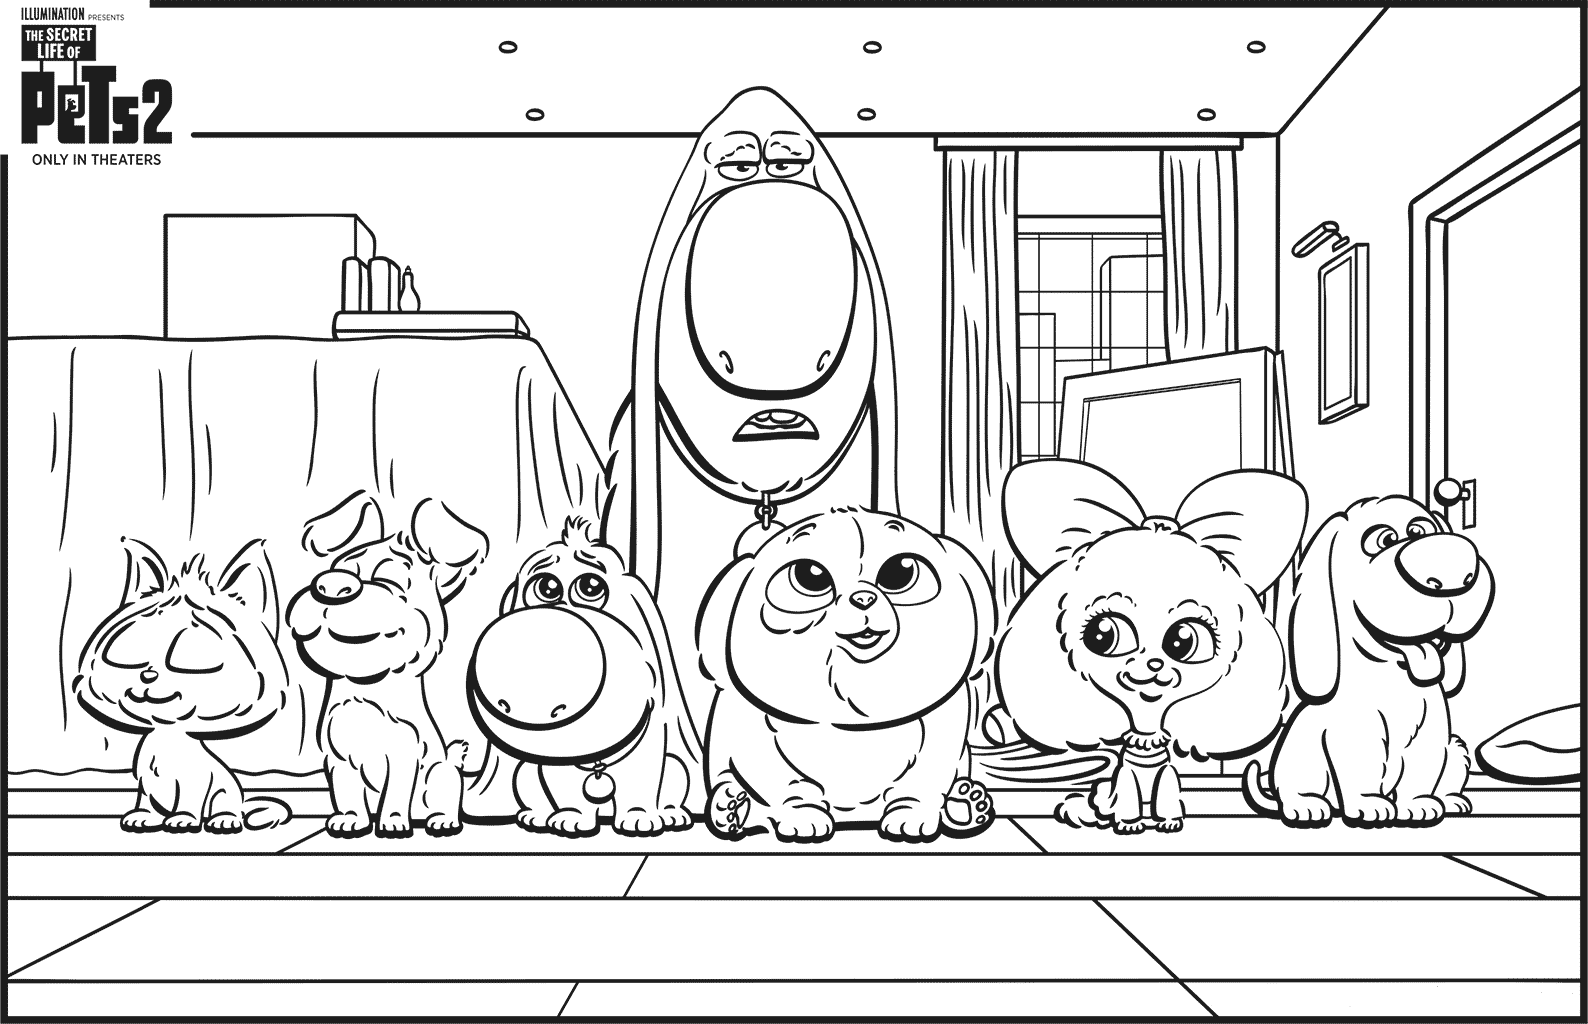 Free Printable The Secret Life of Pets 2 Coloring Pages